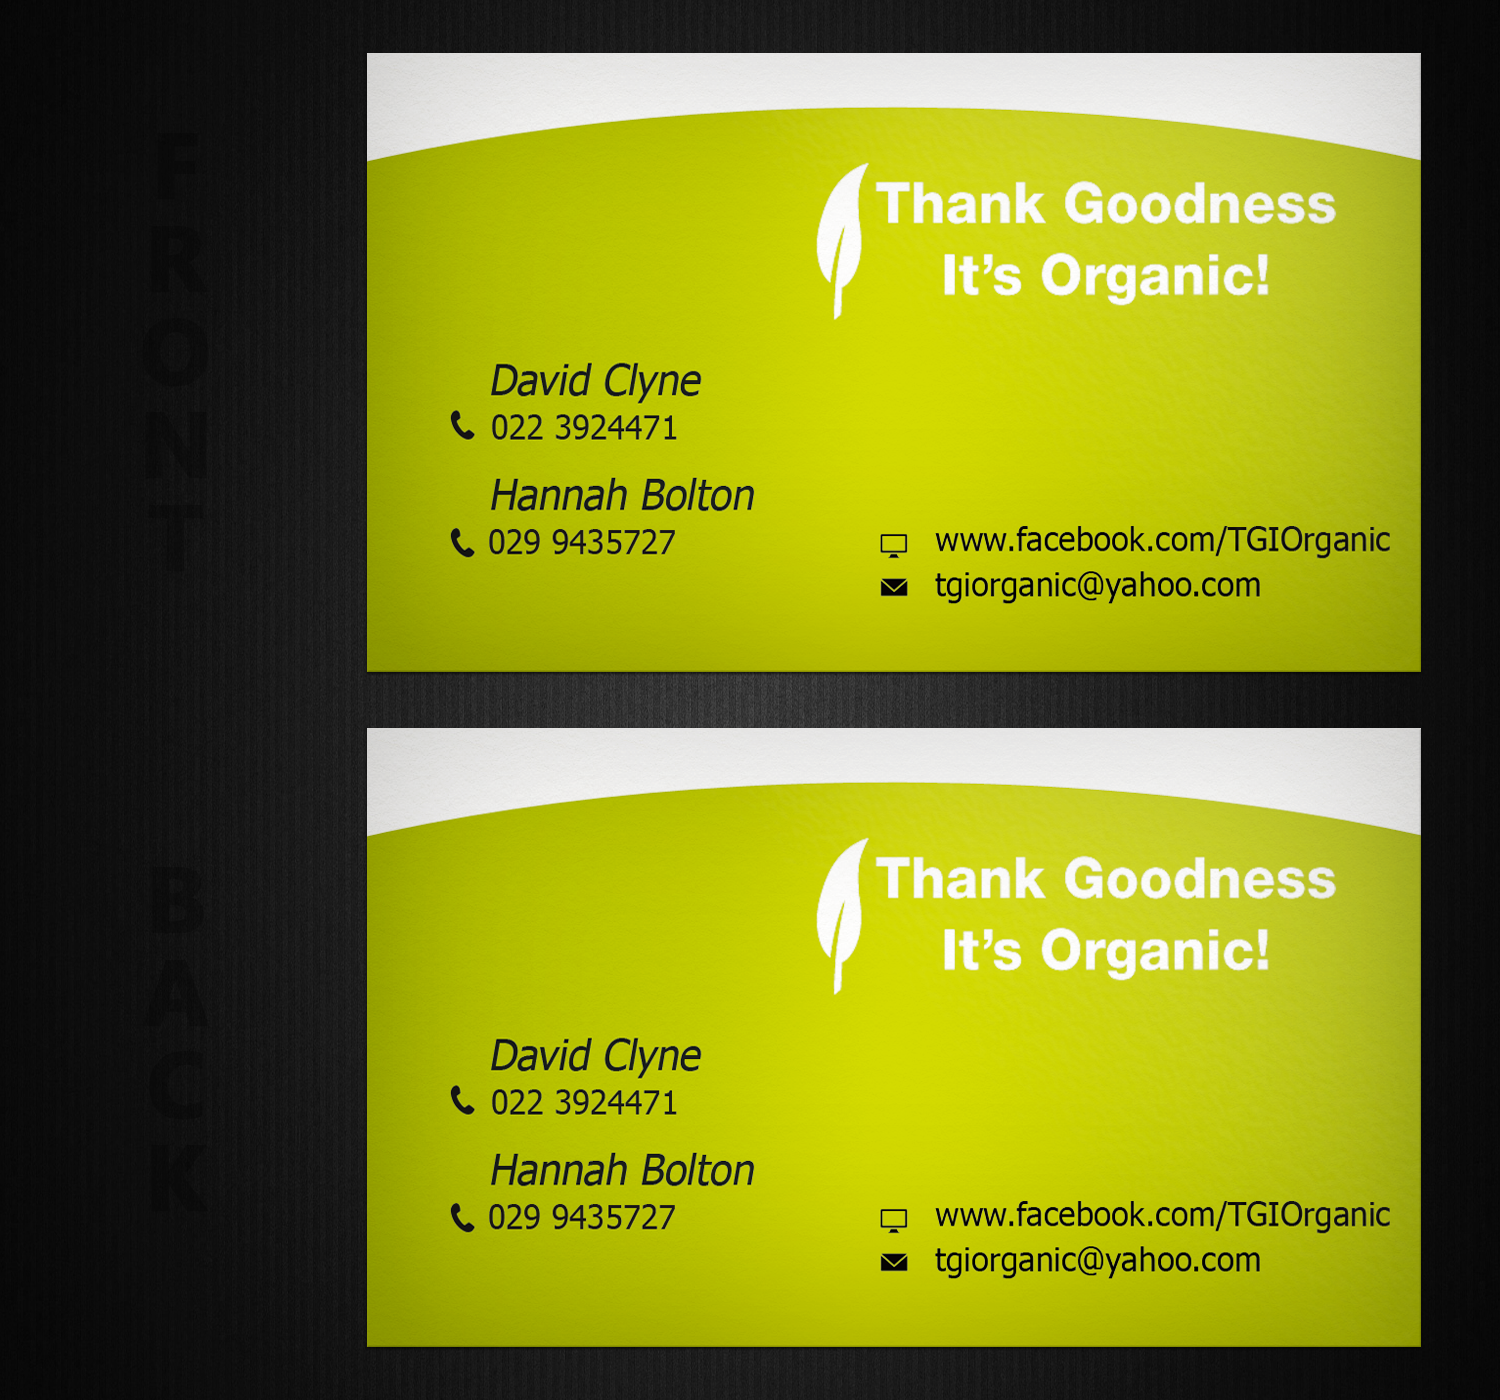 Playful colorful business business card design for thank goodness business card design by creation lanka for thank goodness its organic reheart Gallery